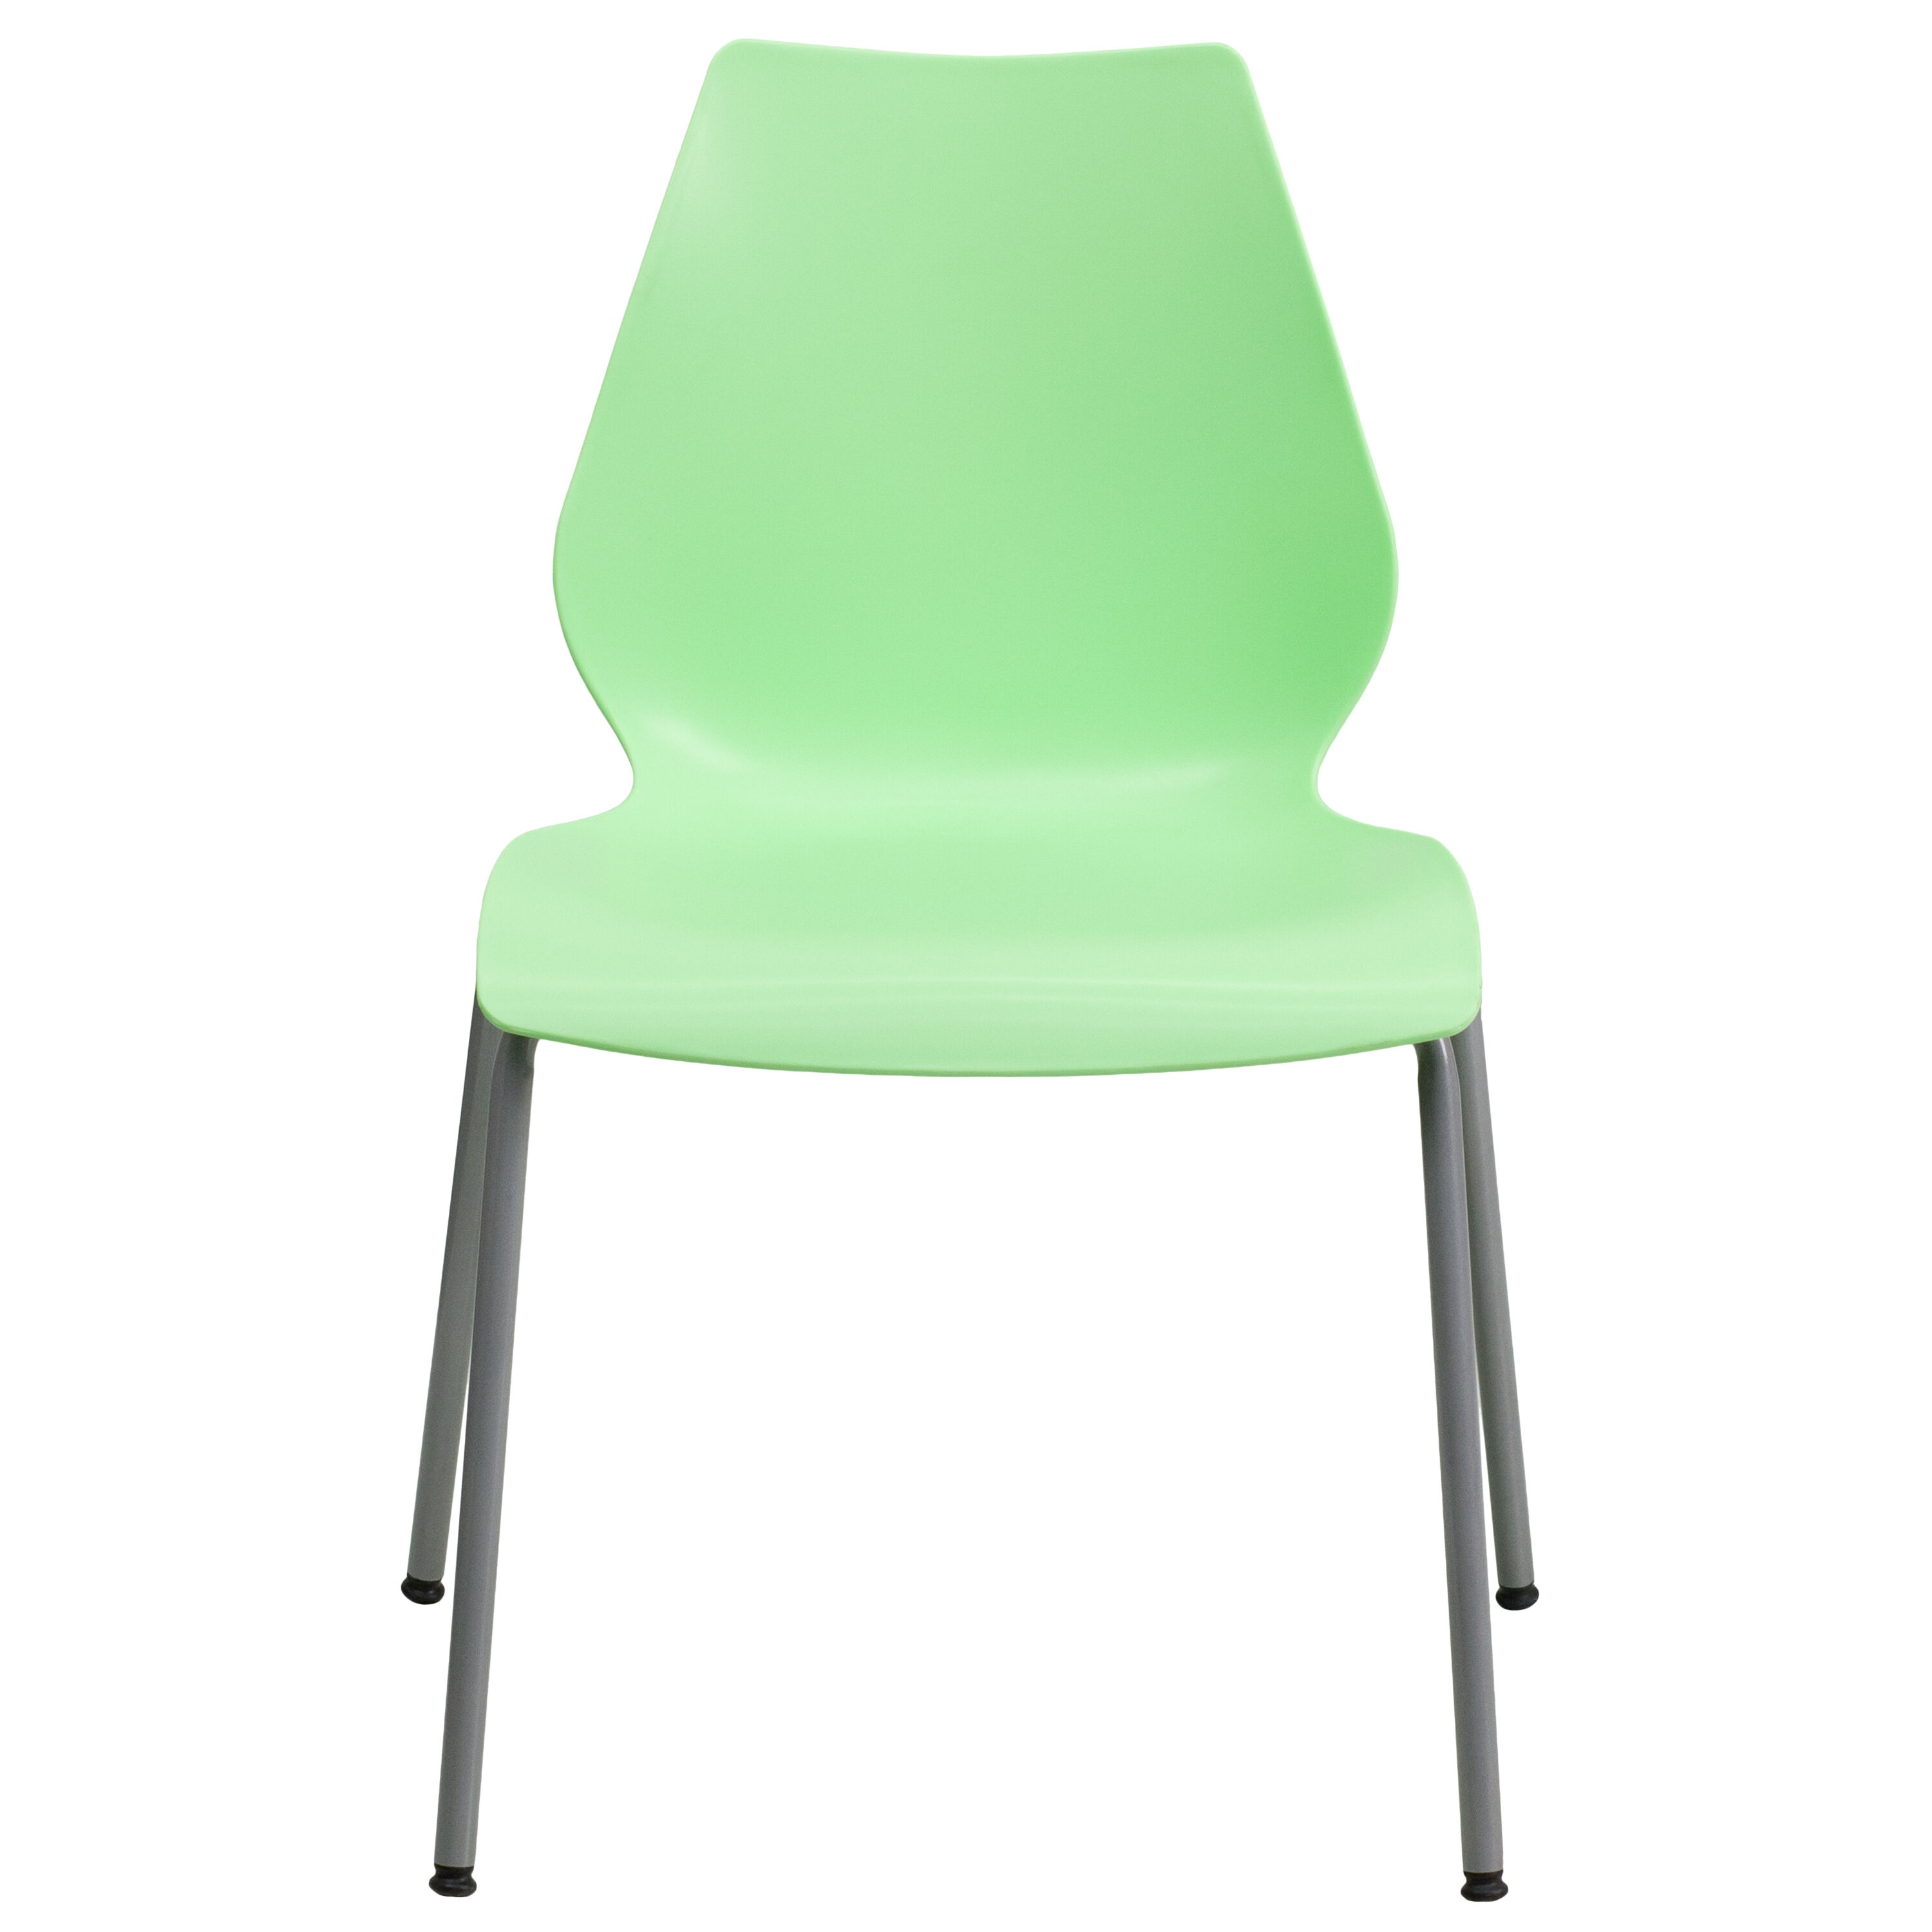 Capacity Green Stack Chair with Lumbar Support and Silver Frame  sc 1 st  StackChairs4Less & Green Plastic Stack Chair RUT-288-GREEN-GG | StackChairs4Less.com